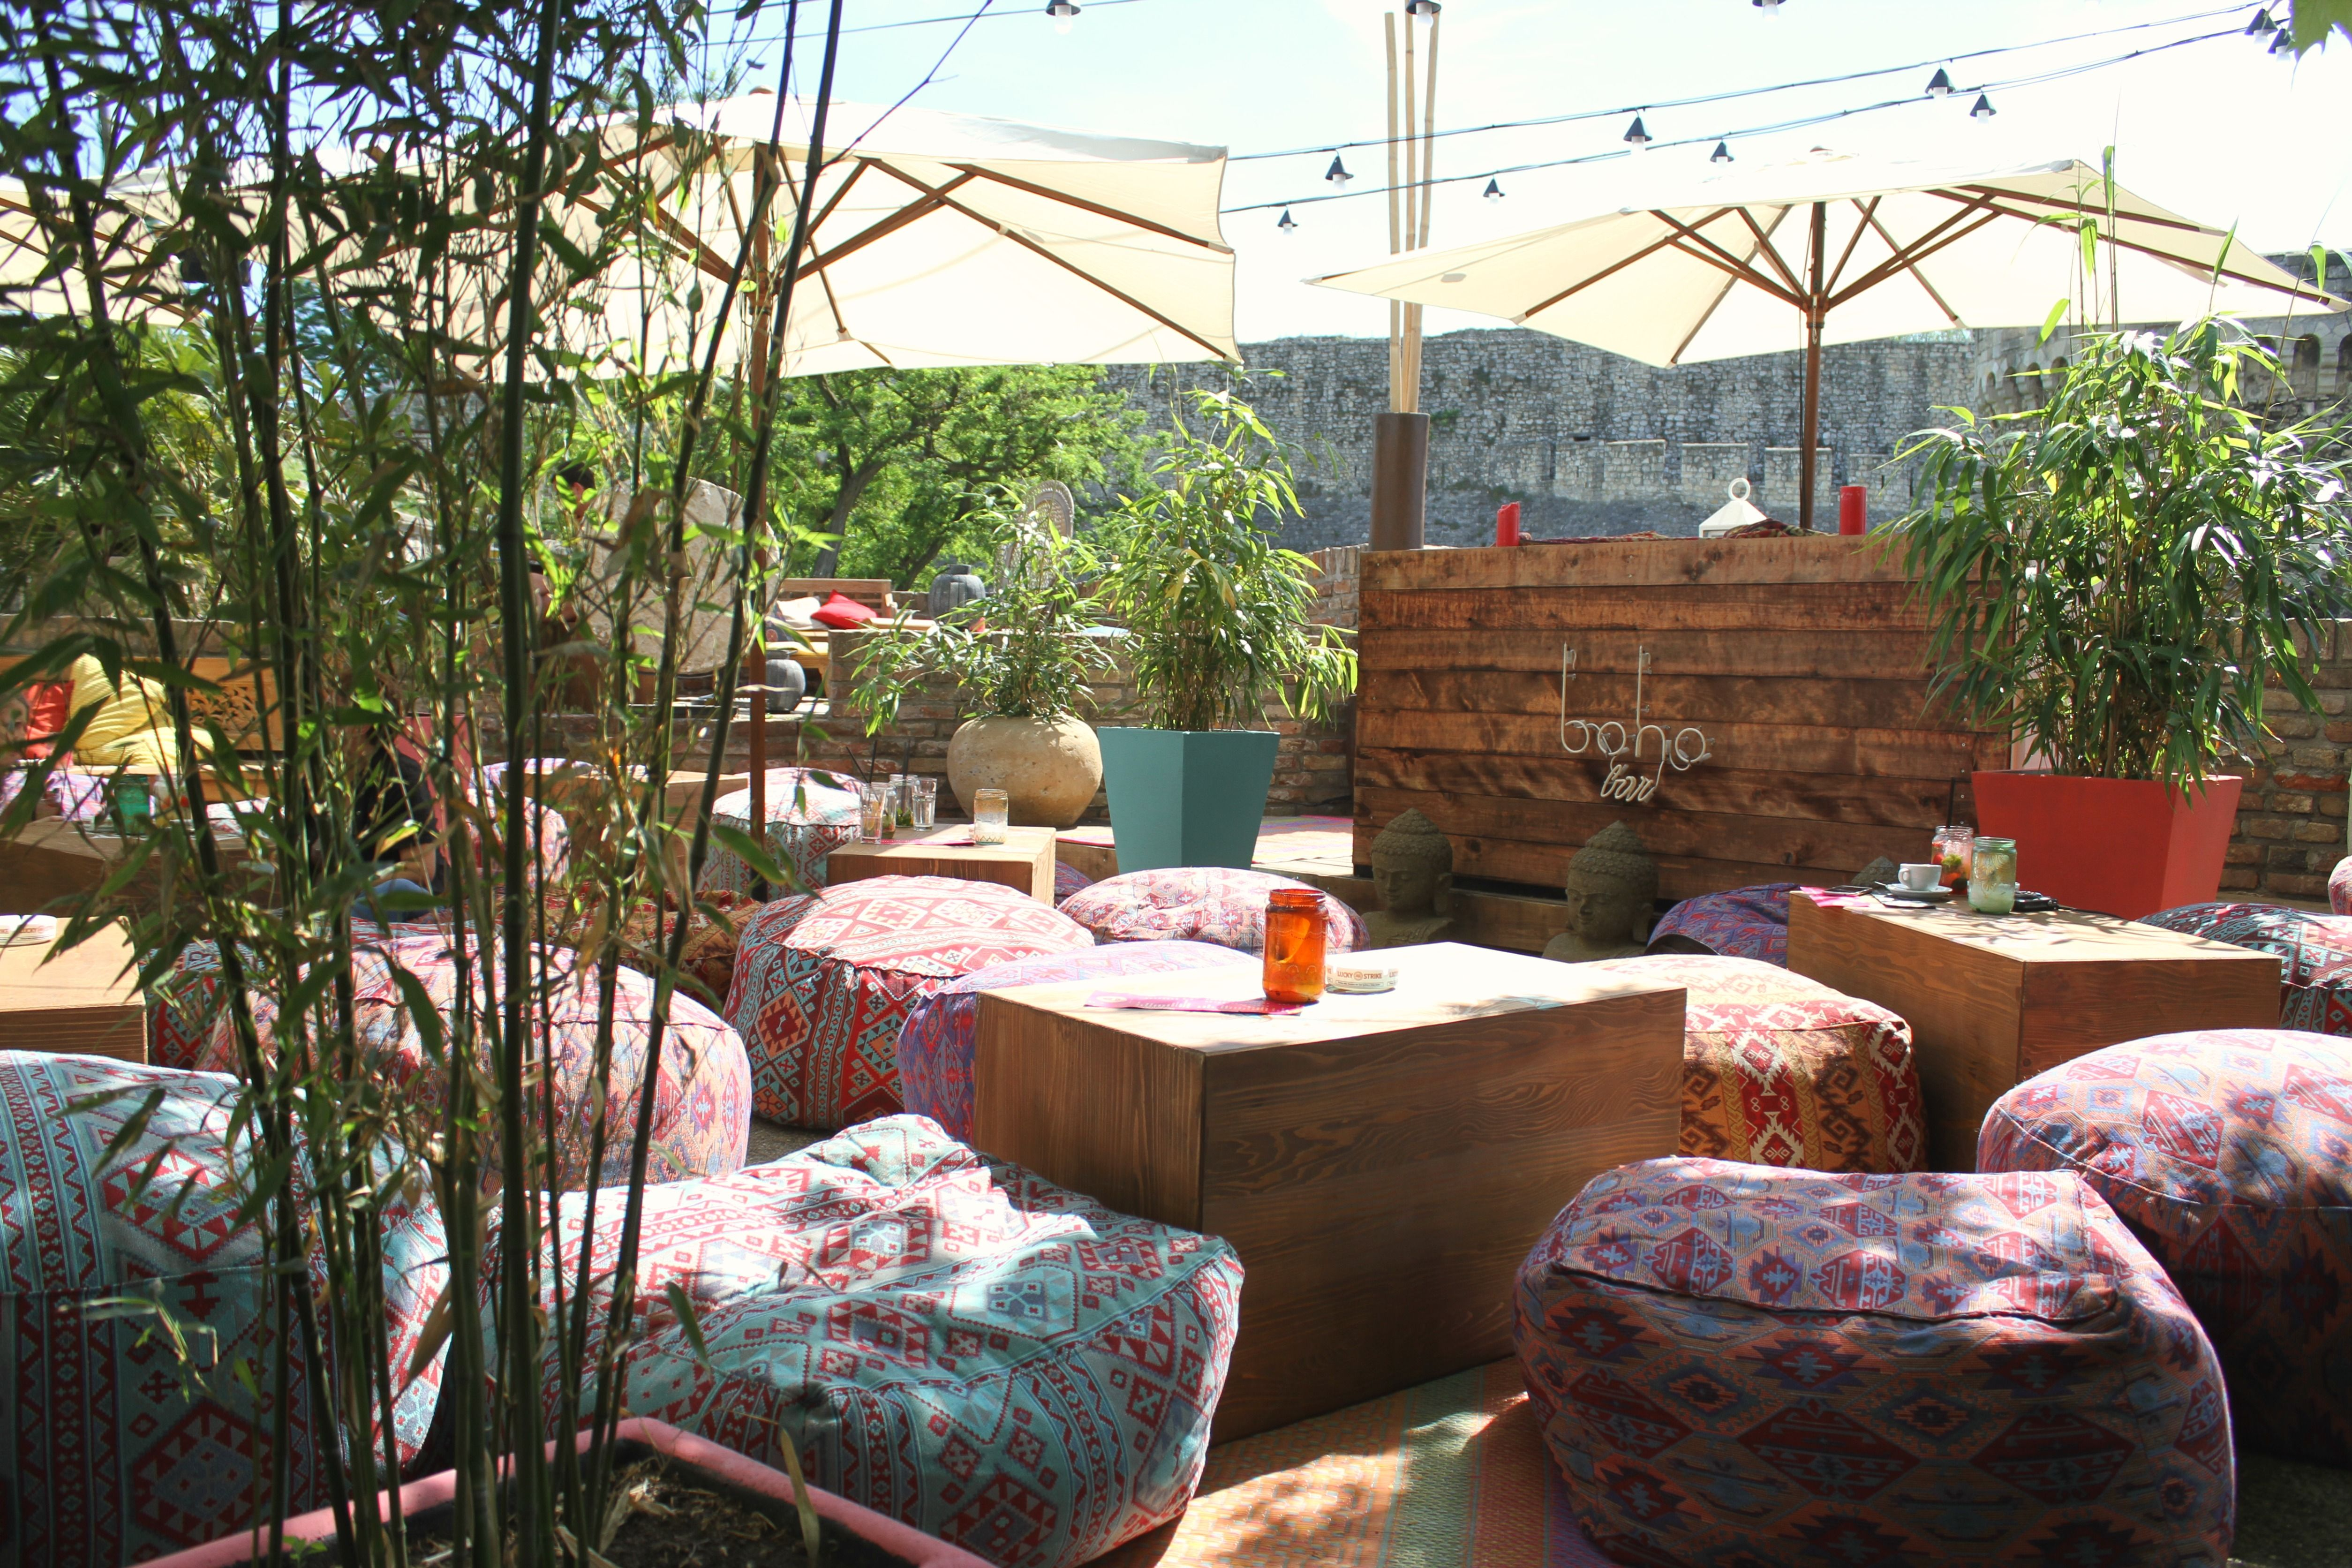 Boho Bar Is Belgrade S New Summer Hotspot Located In The Middle Of The Kalemegdan Fortress The City S Most Famous Attraction Boho Bar Outdoor Decor Patio